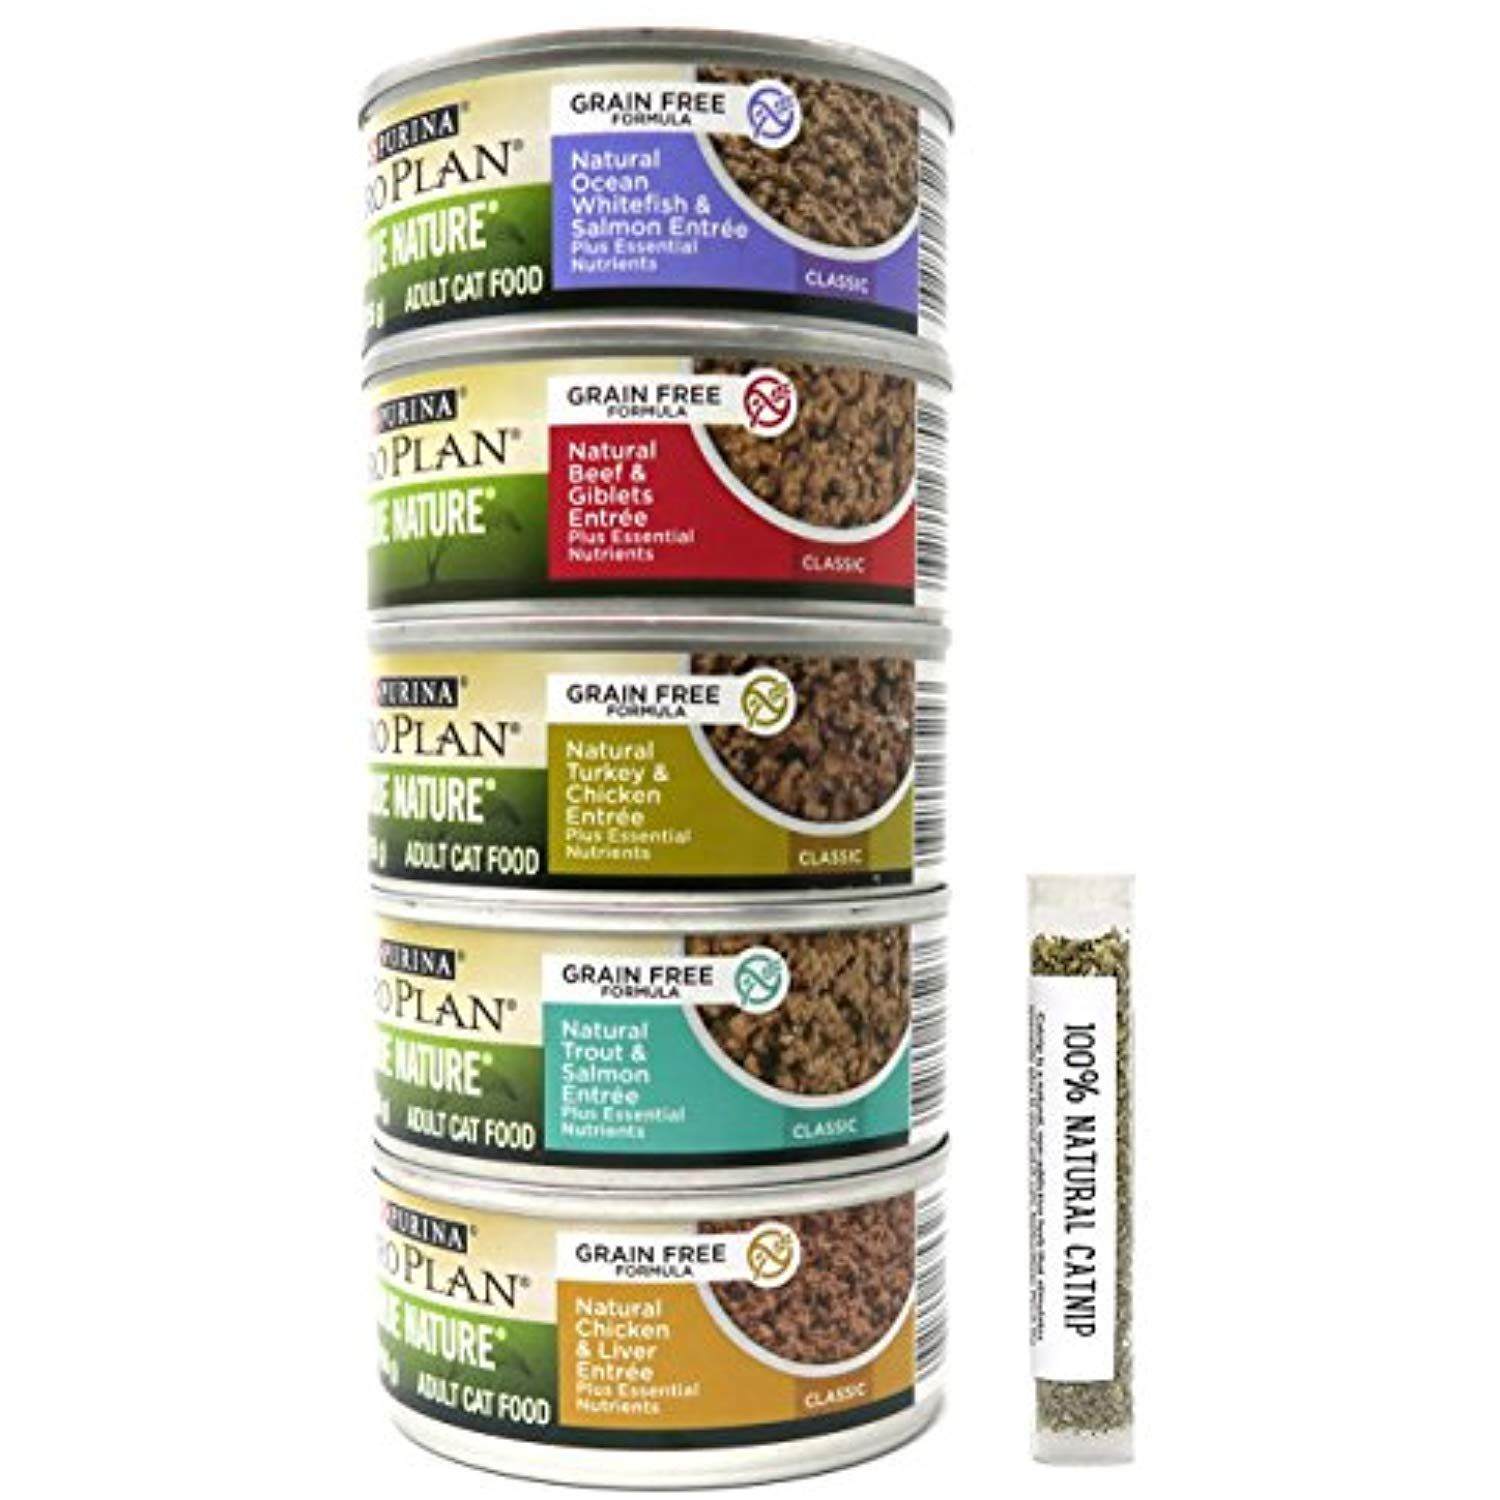 Pro Plan Purina True Nature Formulated Grain Free Wet Cat Food Variety Pack 5 Flavors 5 5 Ounces Each 12 Total Cans Wet Cat Food Canned Cat Food Grain Free